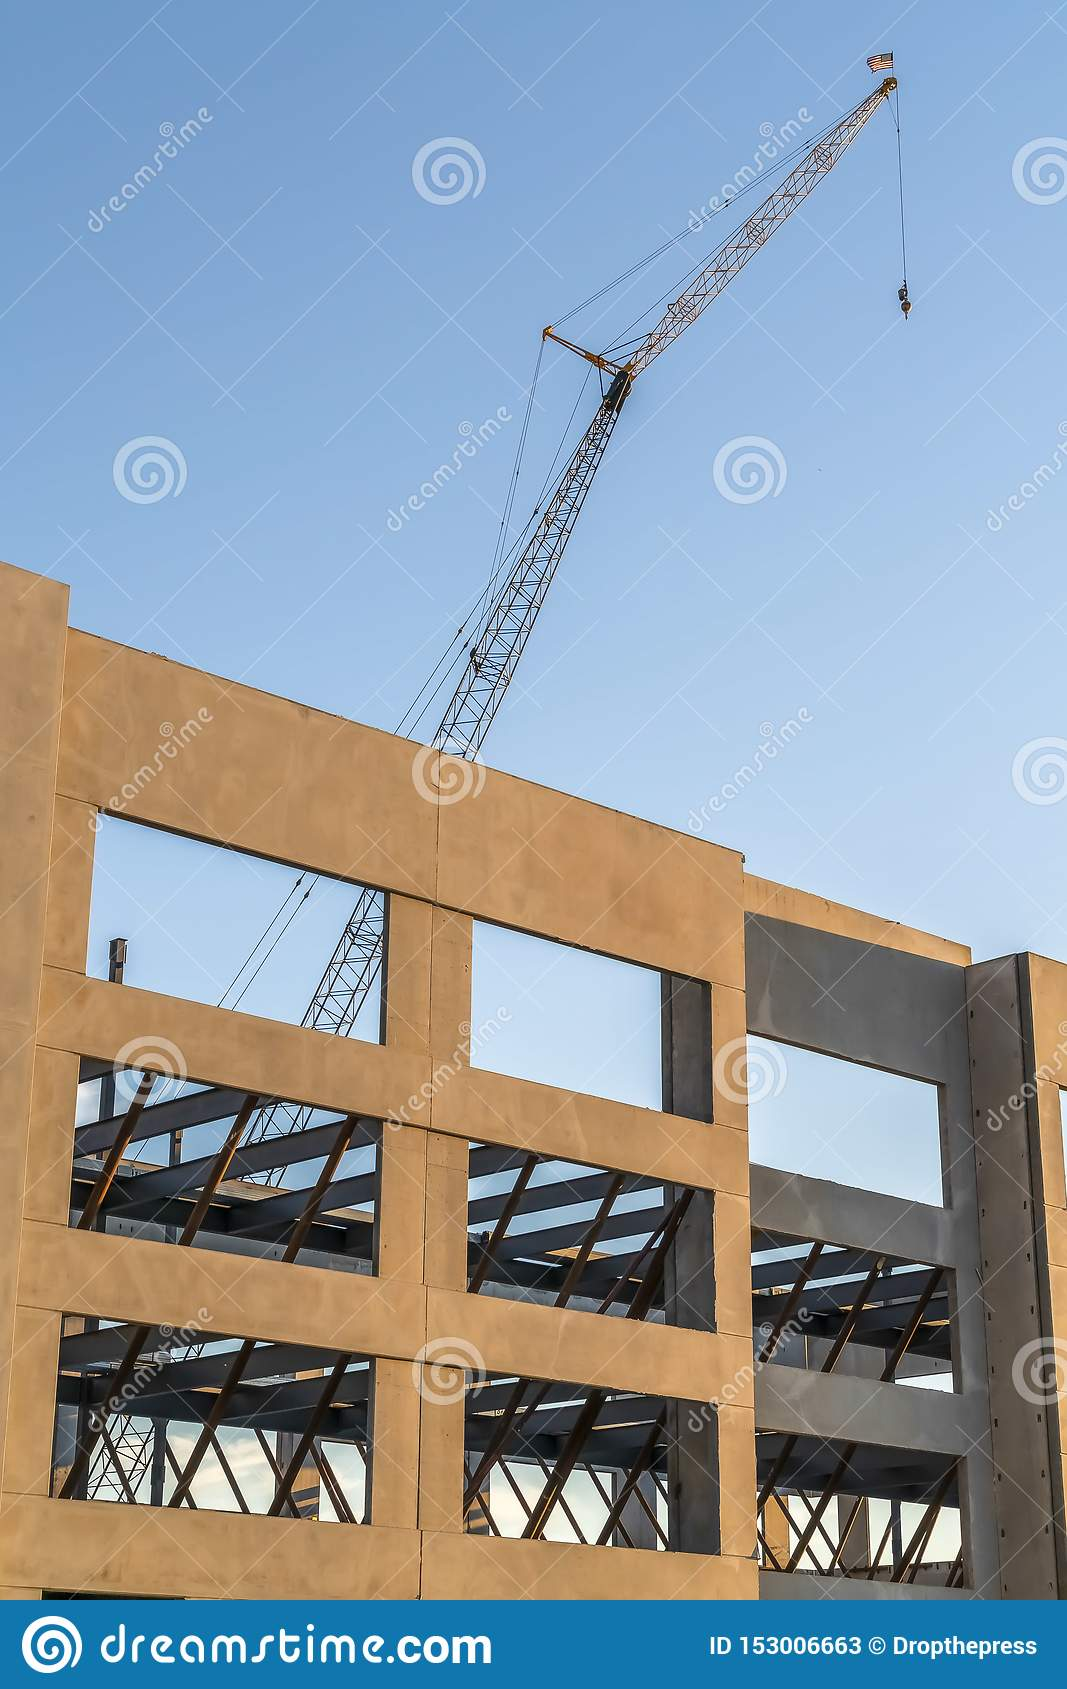 Building under construction with metal crane and blue sky background